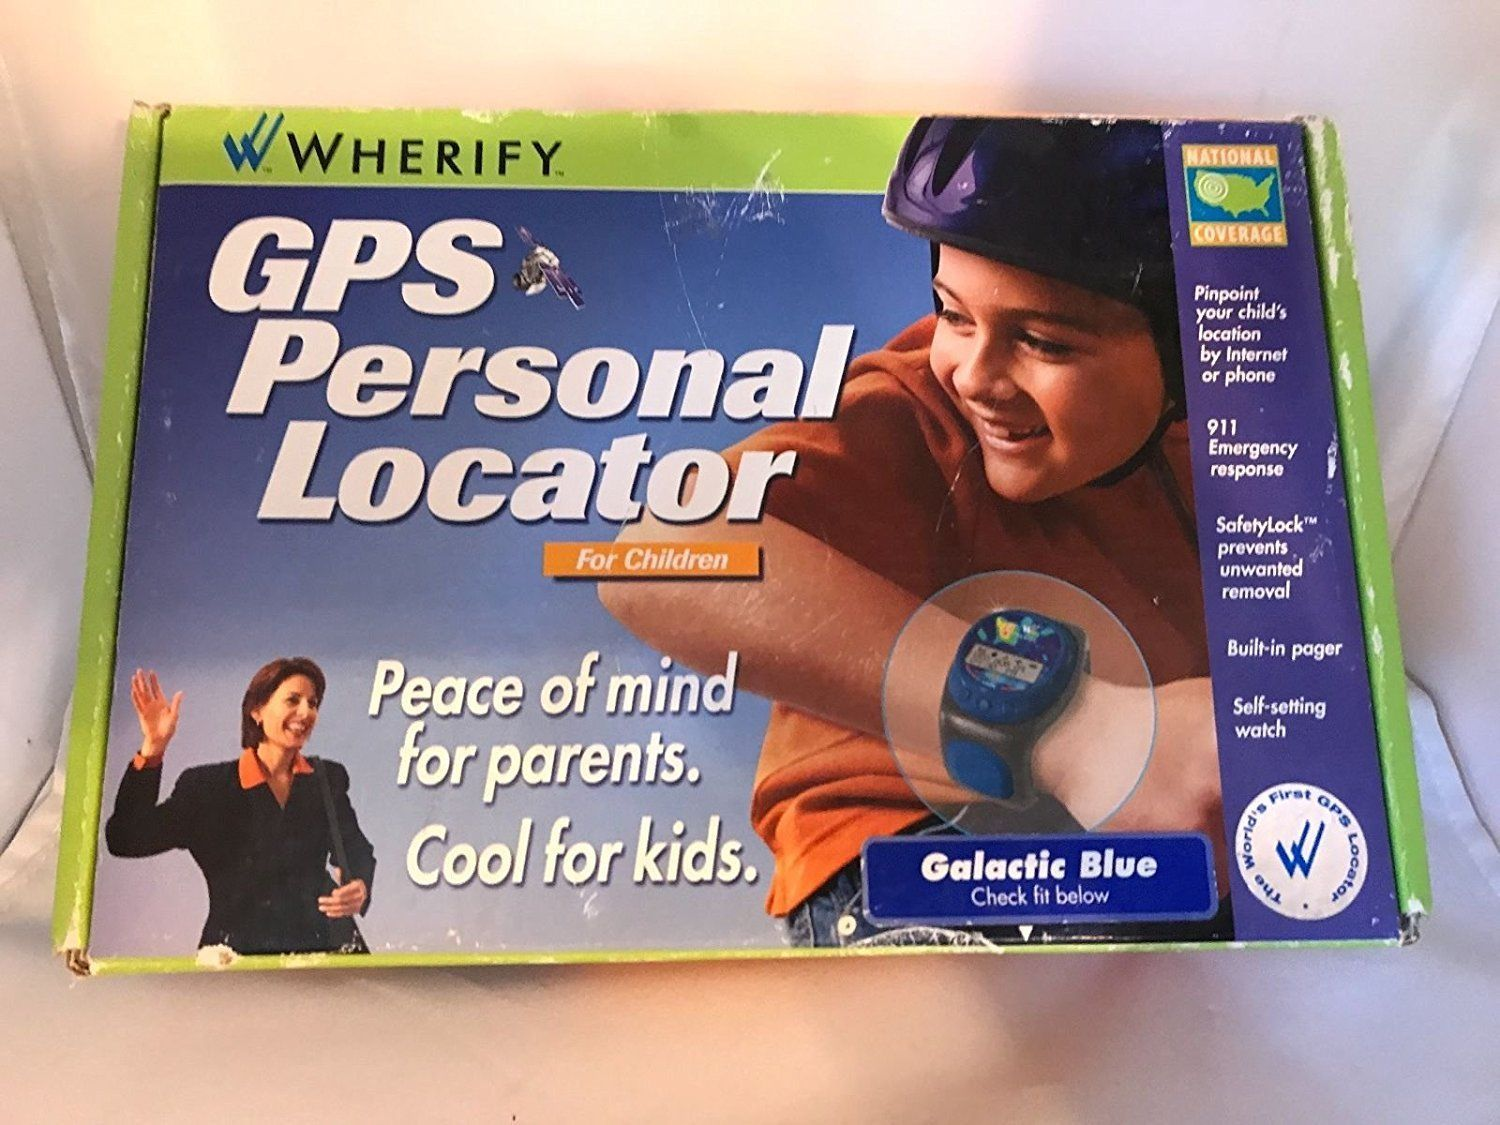 "WHERIFY GPS PERSONAL LOCATOR FOR CHILDREN COSMIC BLUE  FITS 4.5"" TO 6"" WRIST"